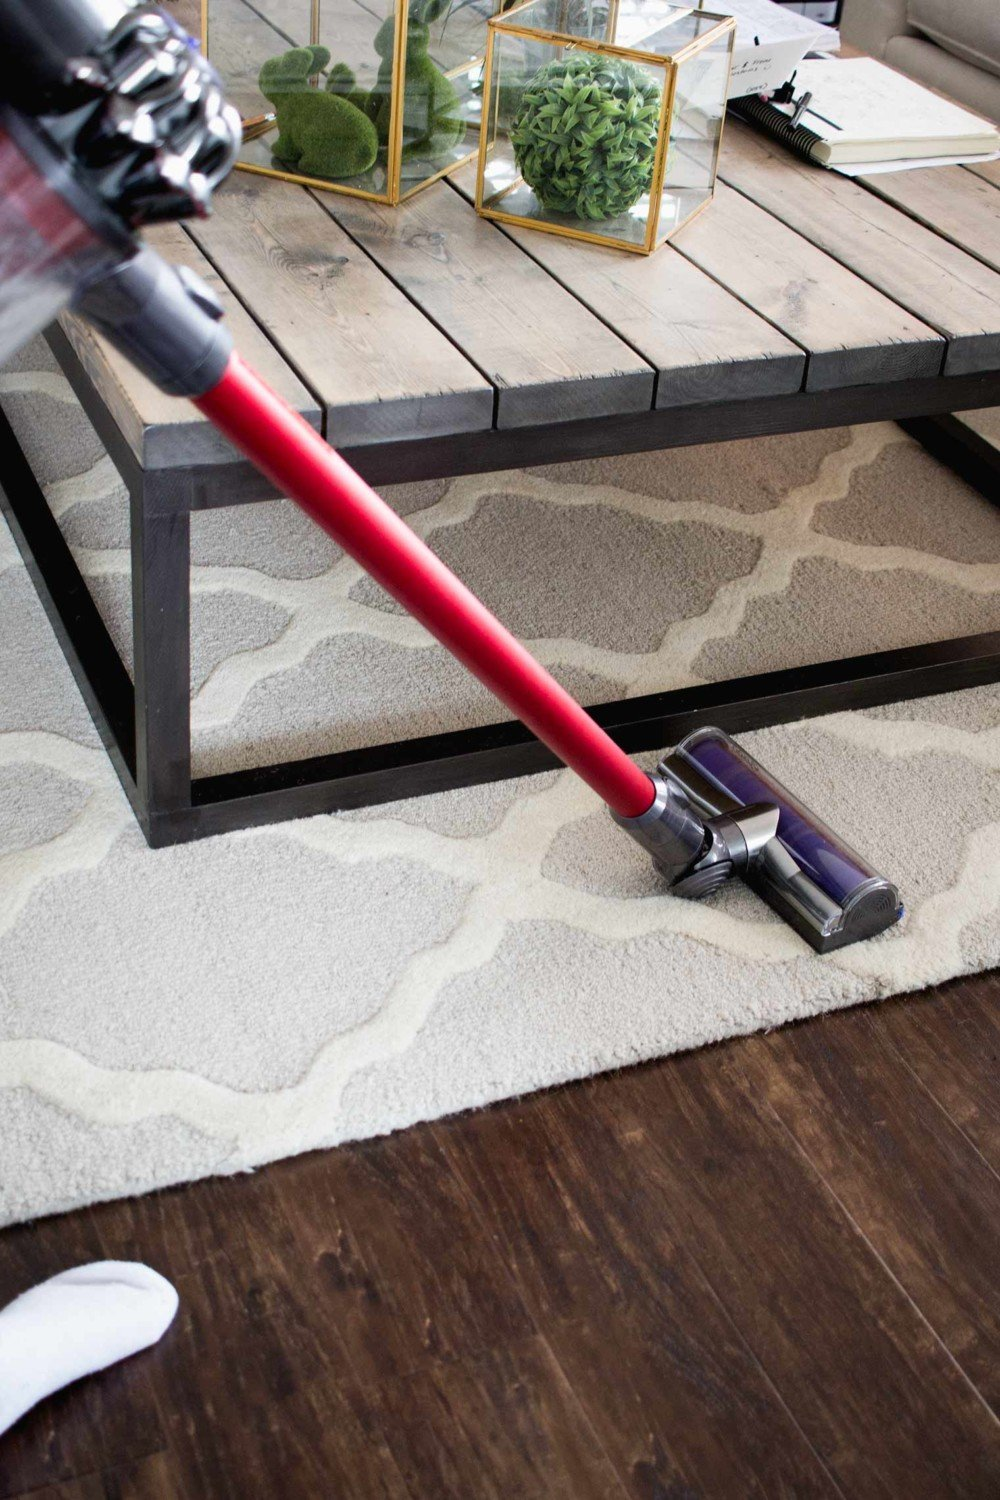 homemaker vacuuming rug